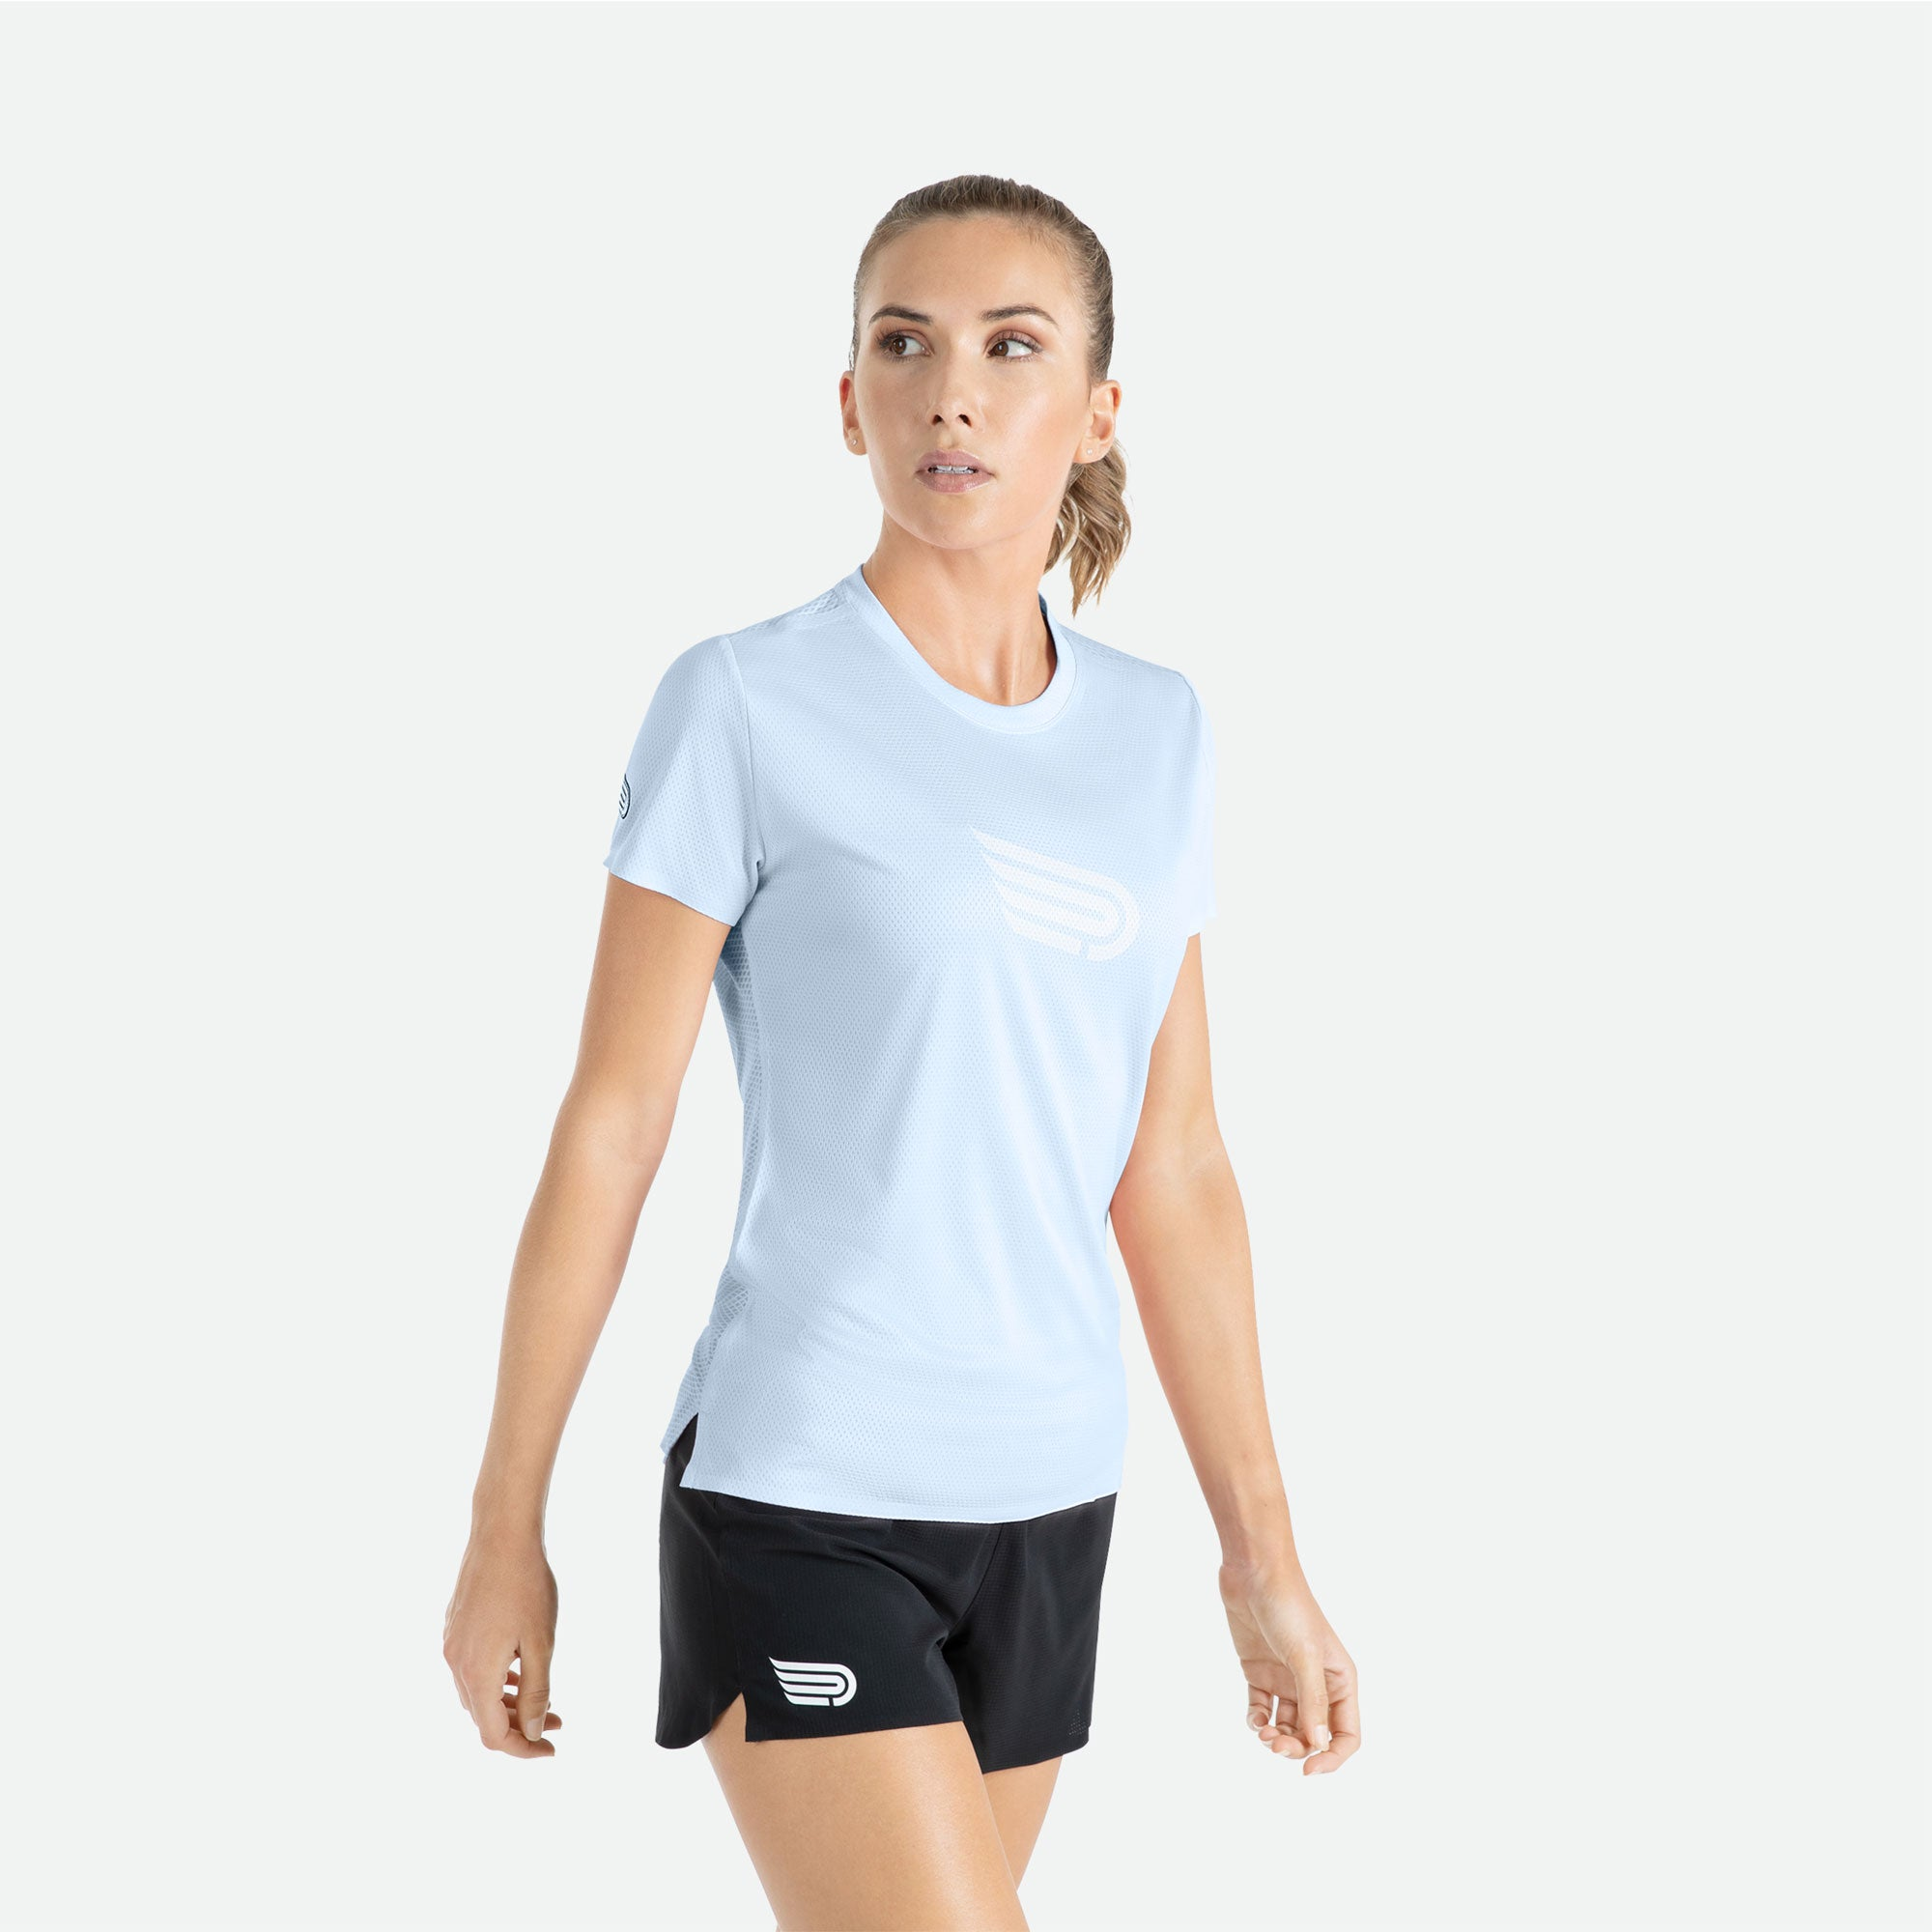 Engineered 3D vent mesh structure for optimal ventilation on the back of our Pressio women's Ārahi light blue/white short sleeve t-shirt.